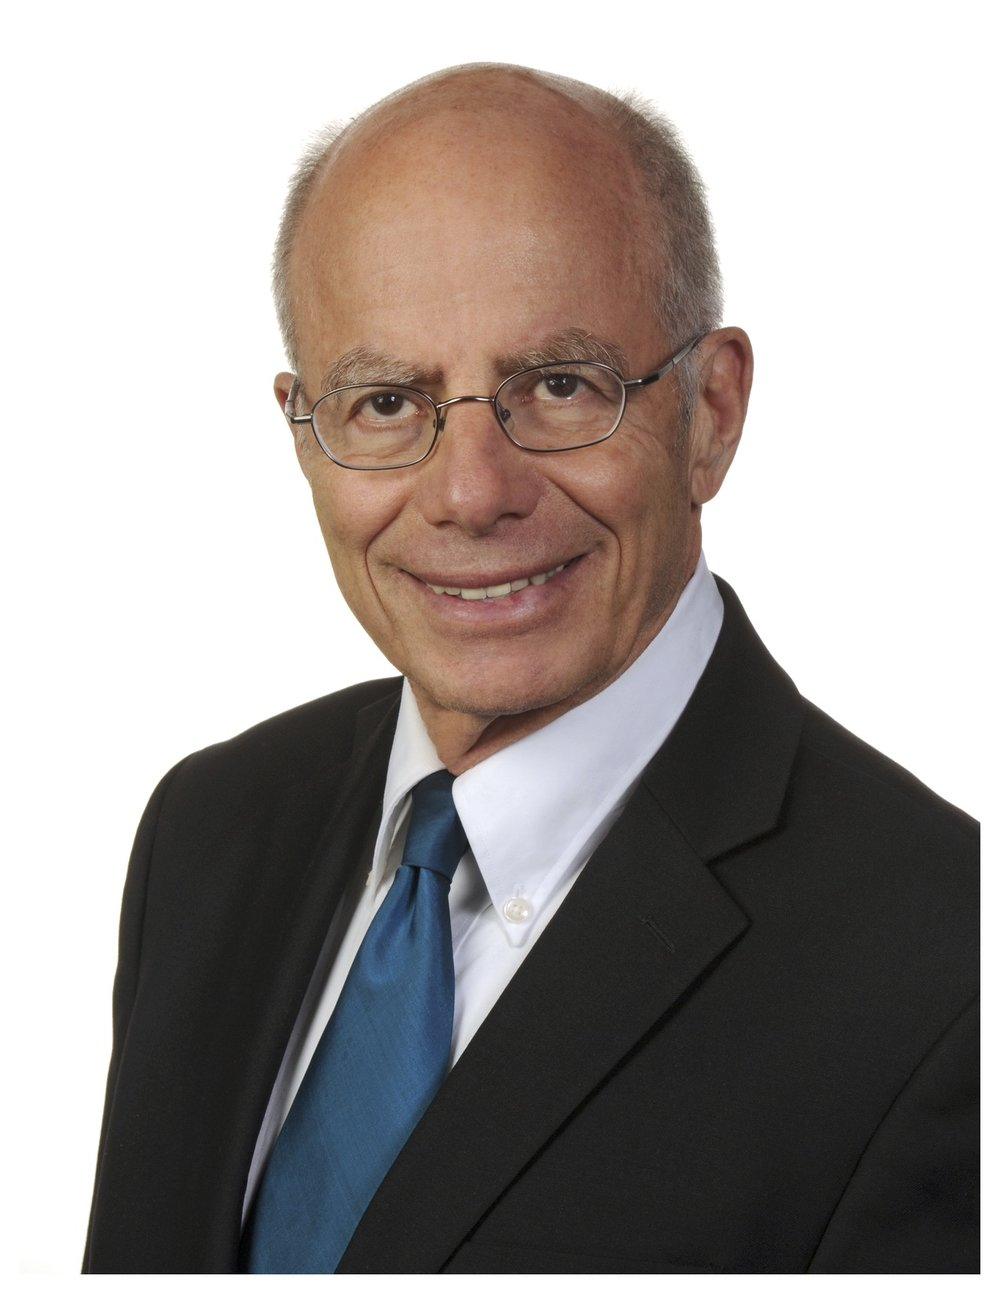 International political economy and state sovereignty expert Stephen Krasner